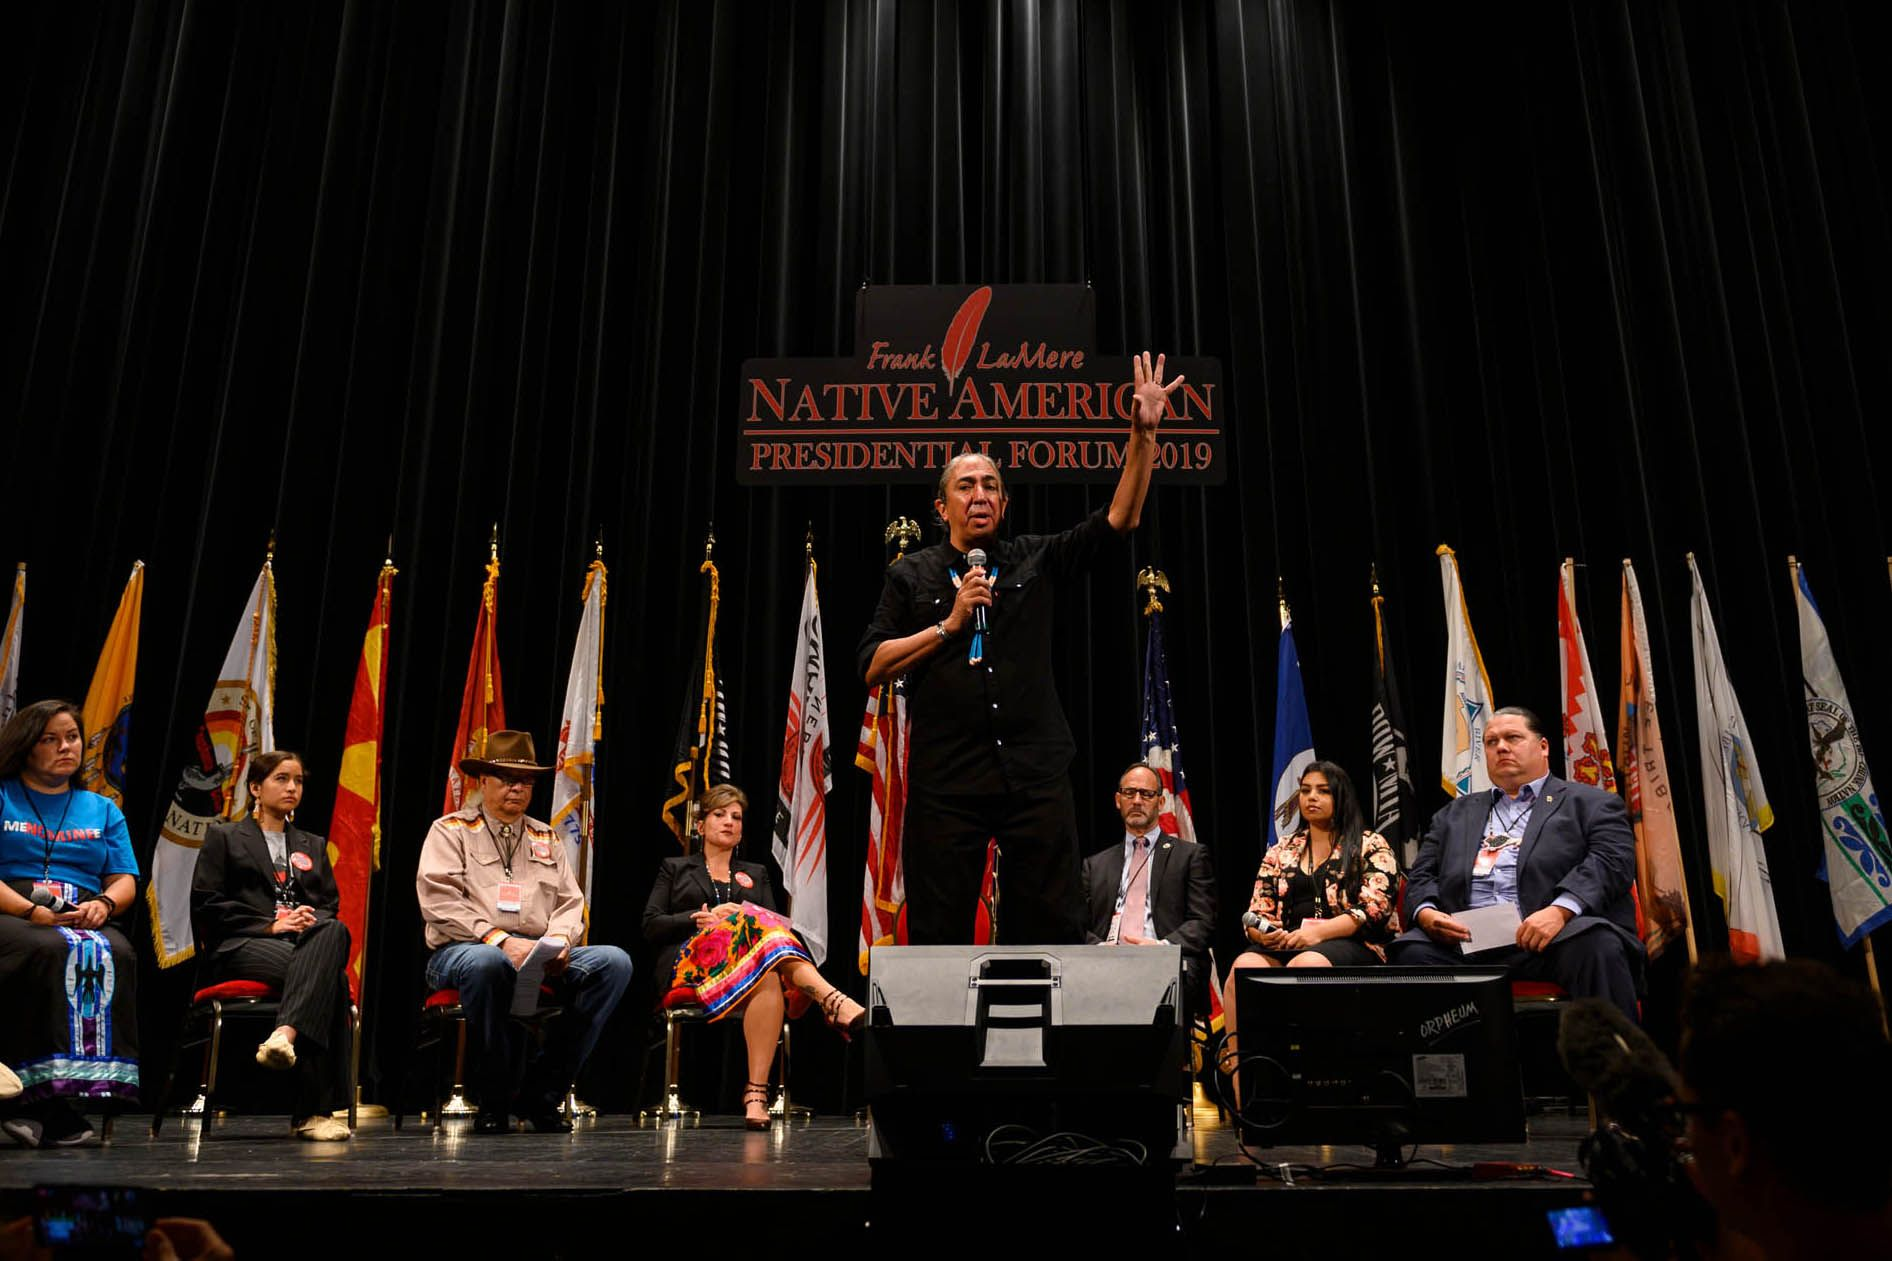 Elizabeth Warren Was Well-Received at the Native American Presidential Forum. Mark Charles Was the Main Event.